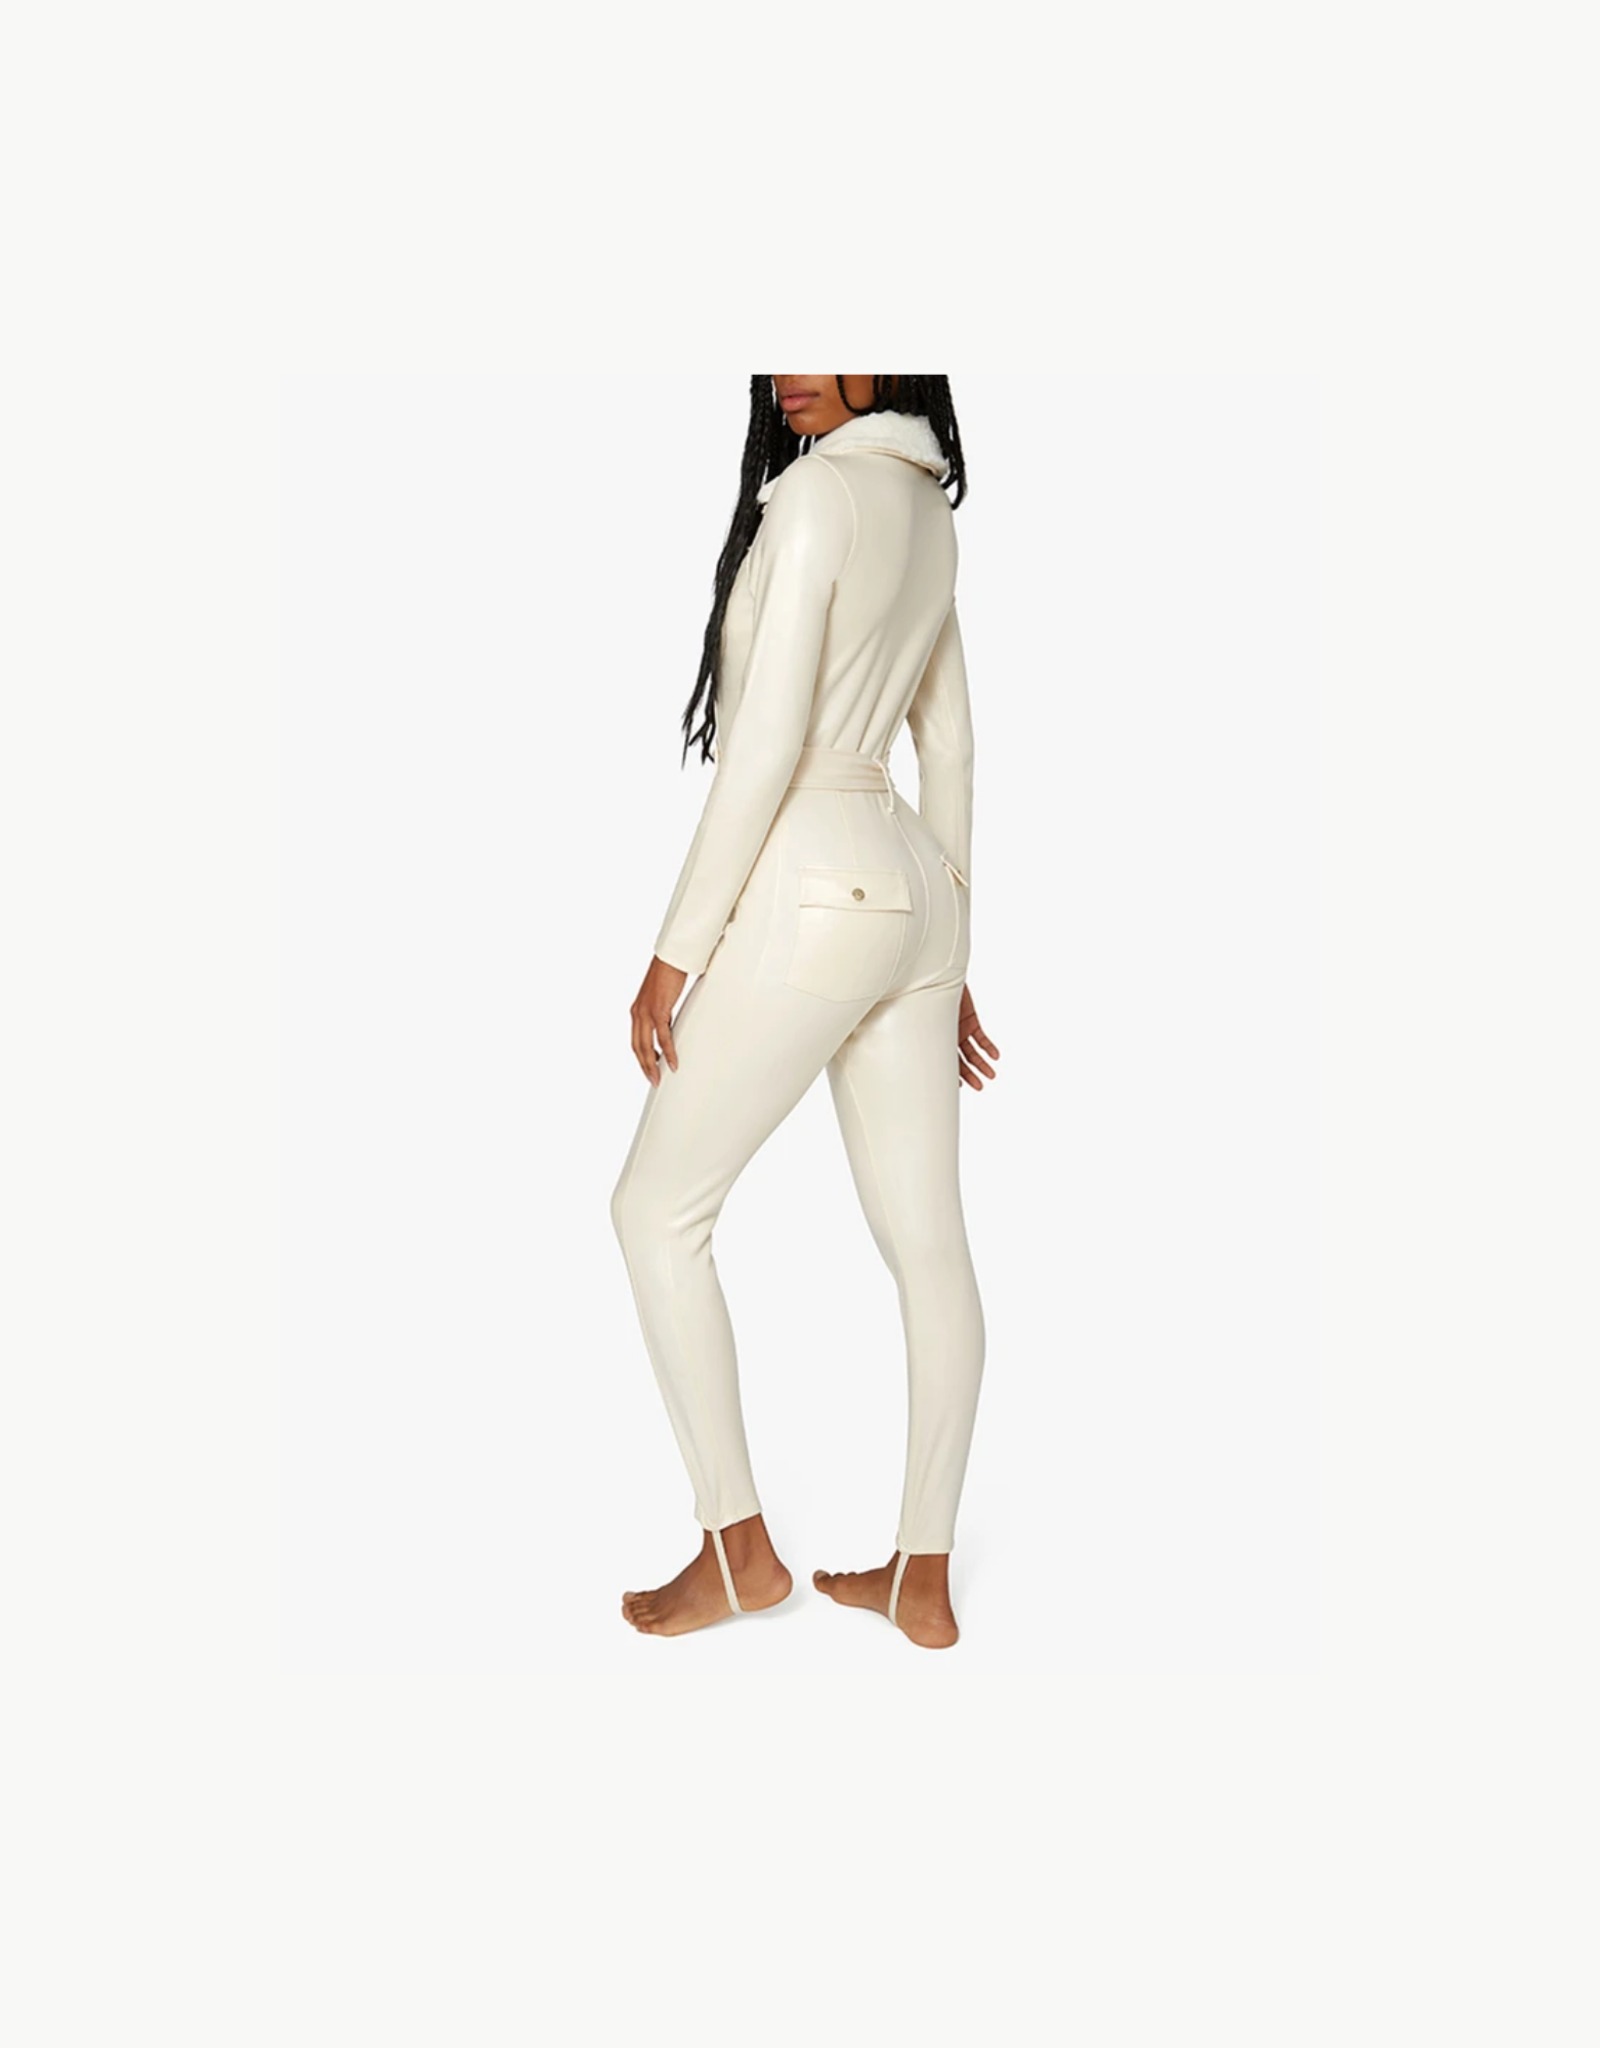 Shop WeWoreWhat Ski Suit with Fur Collar  - Ivory